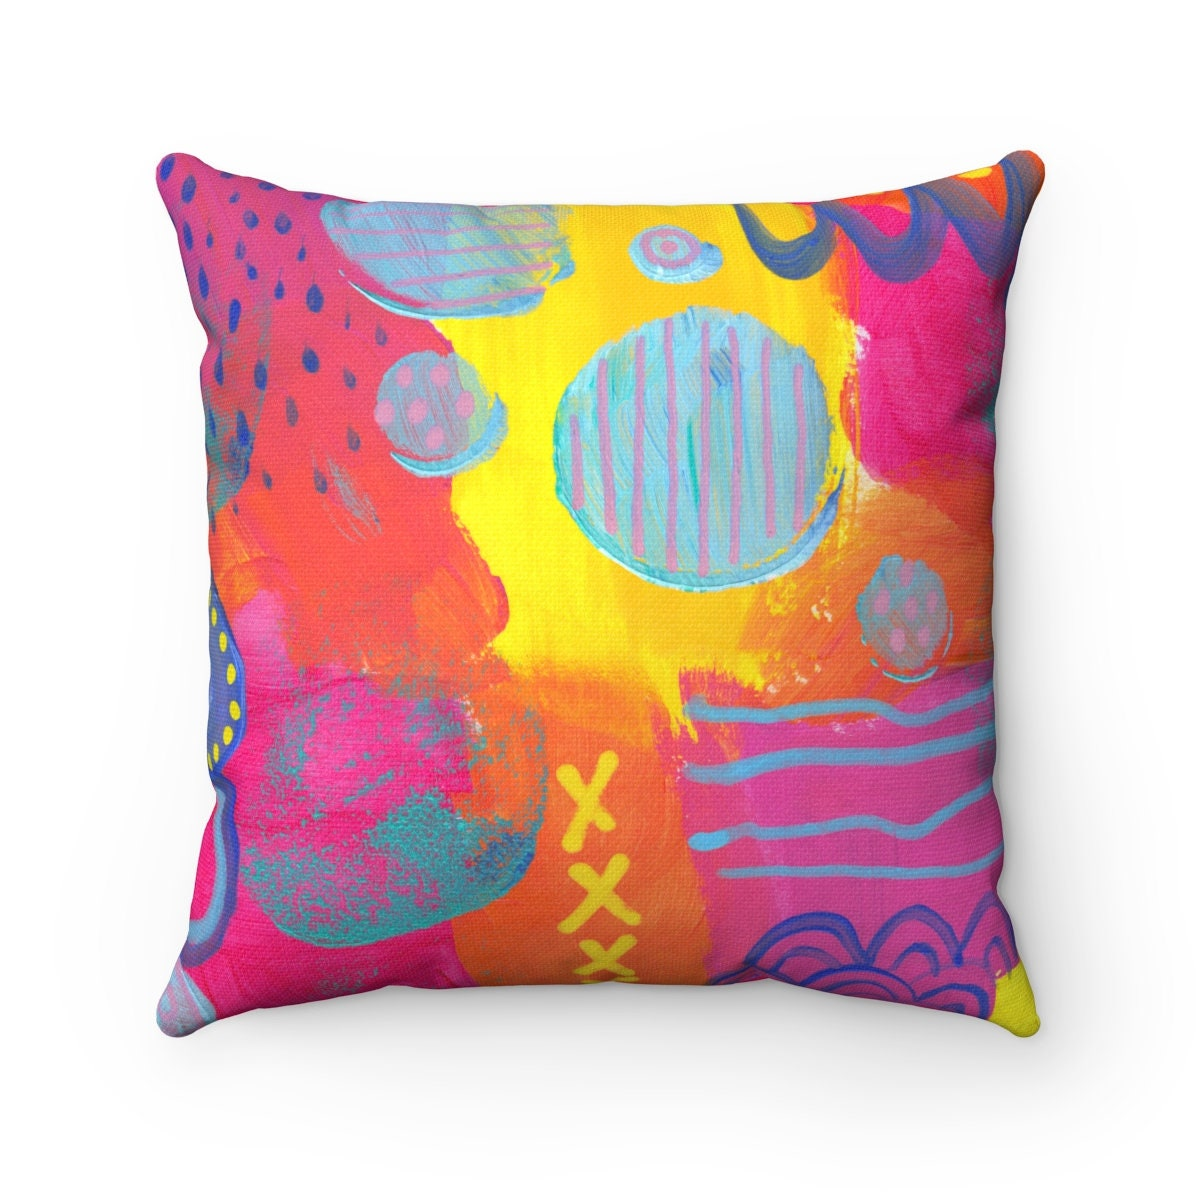 OUTDOOR Throw Pillow . Abstract Outdoor Throw Pillow . Modern Outdoor Pillow  . Abstract Yellow Patio Cushion . Lumbar Pillow . Patio Cushion